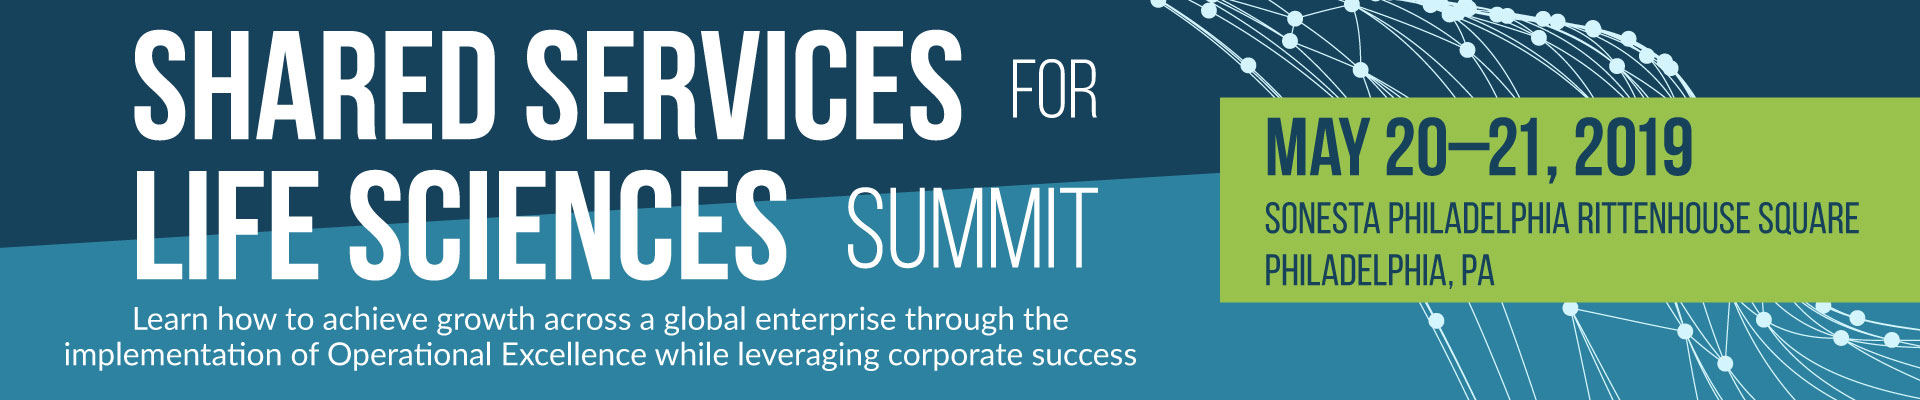 Shared Services for Life Sciences Summit